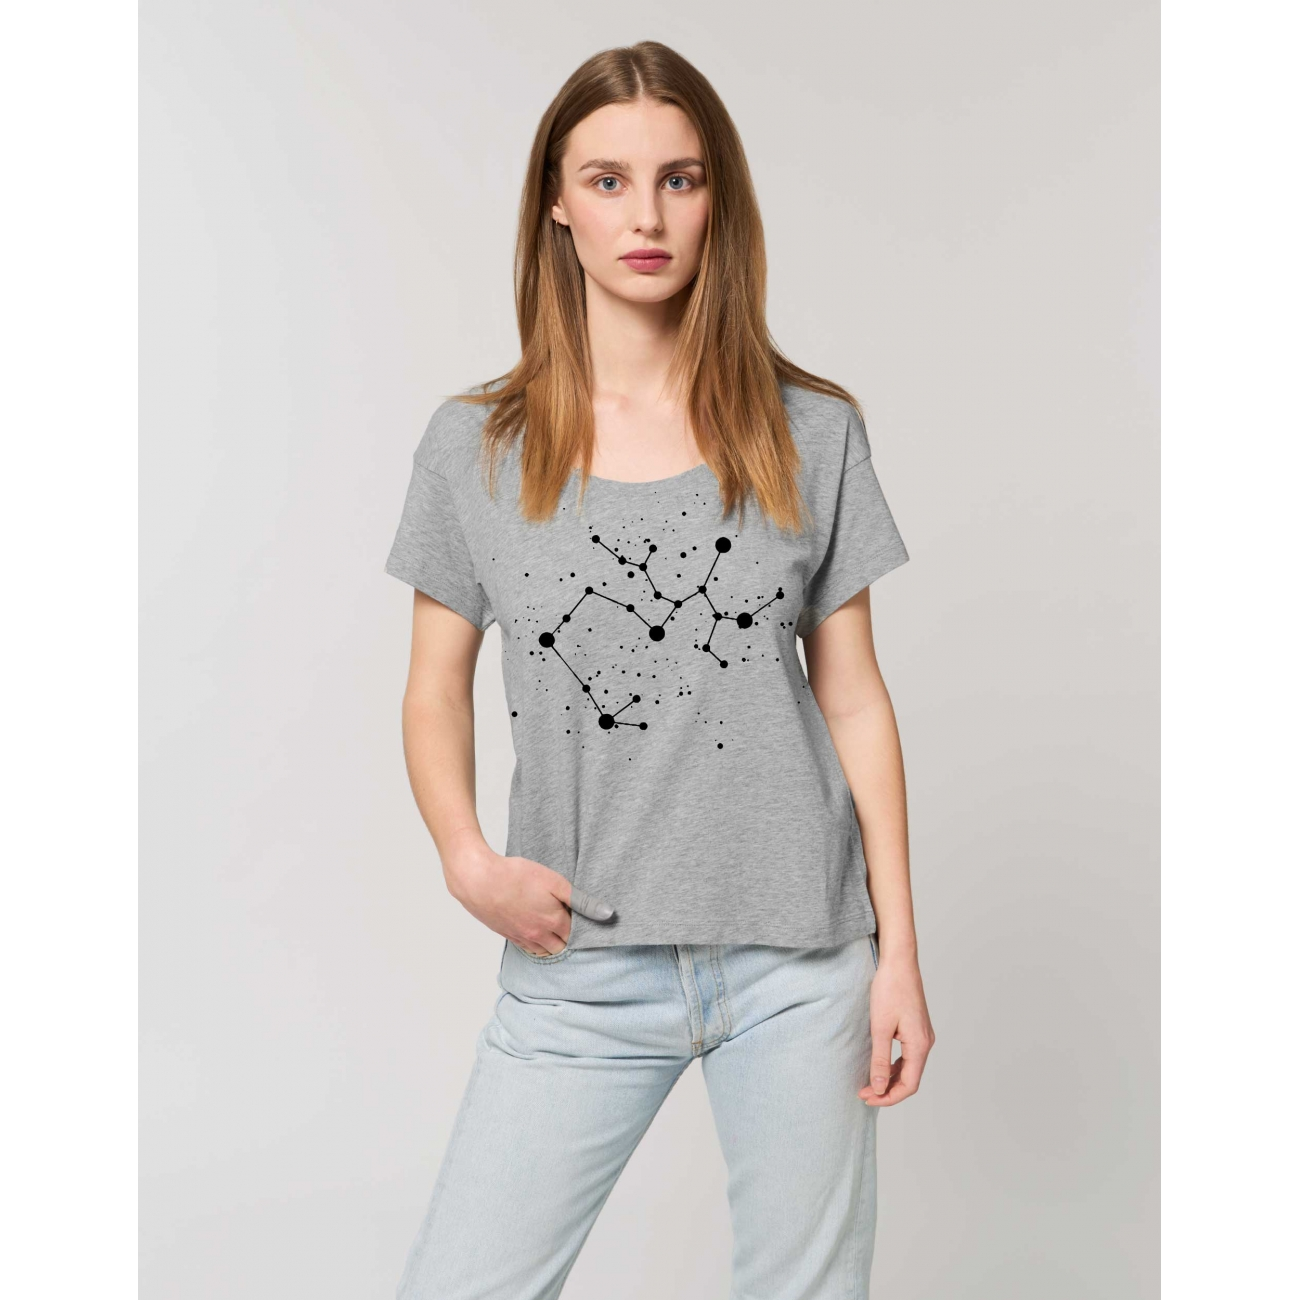 https://tee-shirt-bio.com/9560-thickbox_default/tee-shirt-femme-gris-chine-coton-bio-coupe-loose-constellation.jpg